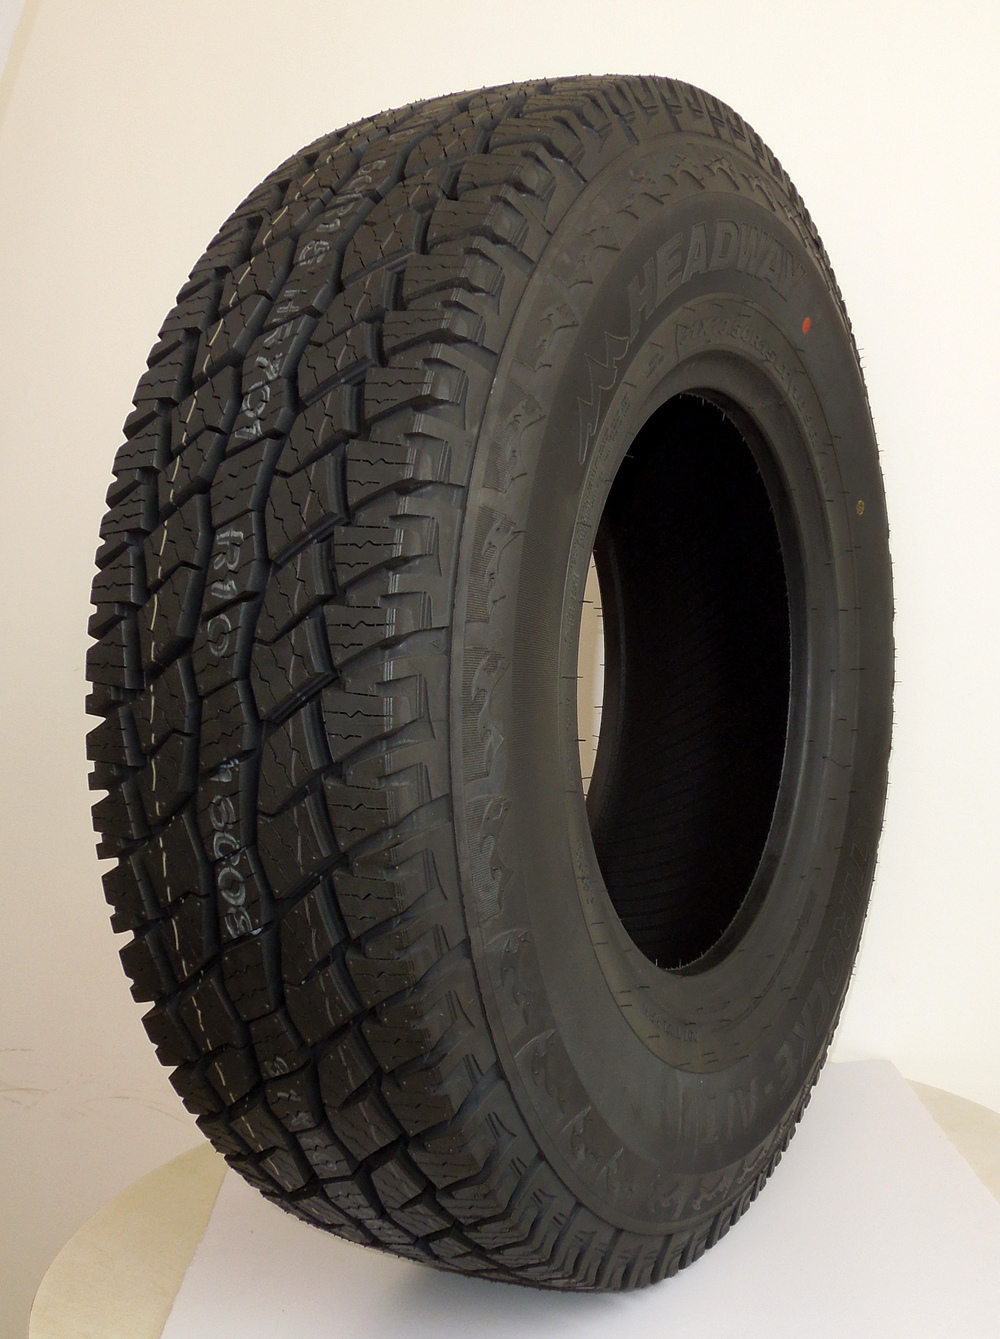 China Supplier Thailand Rotalla Tire Price In The Philippines Is ...